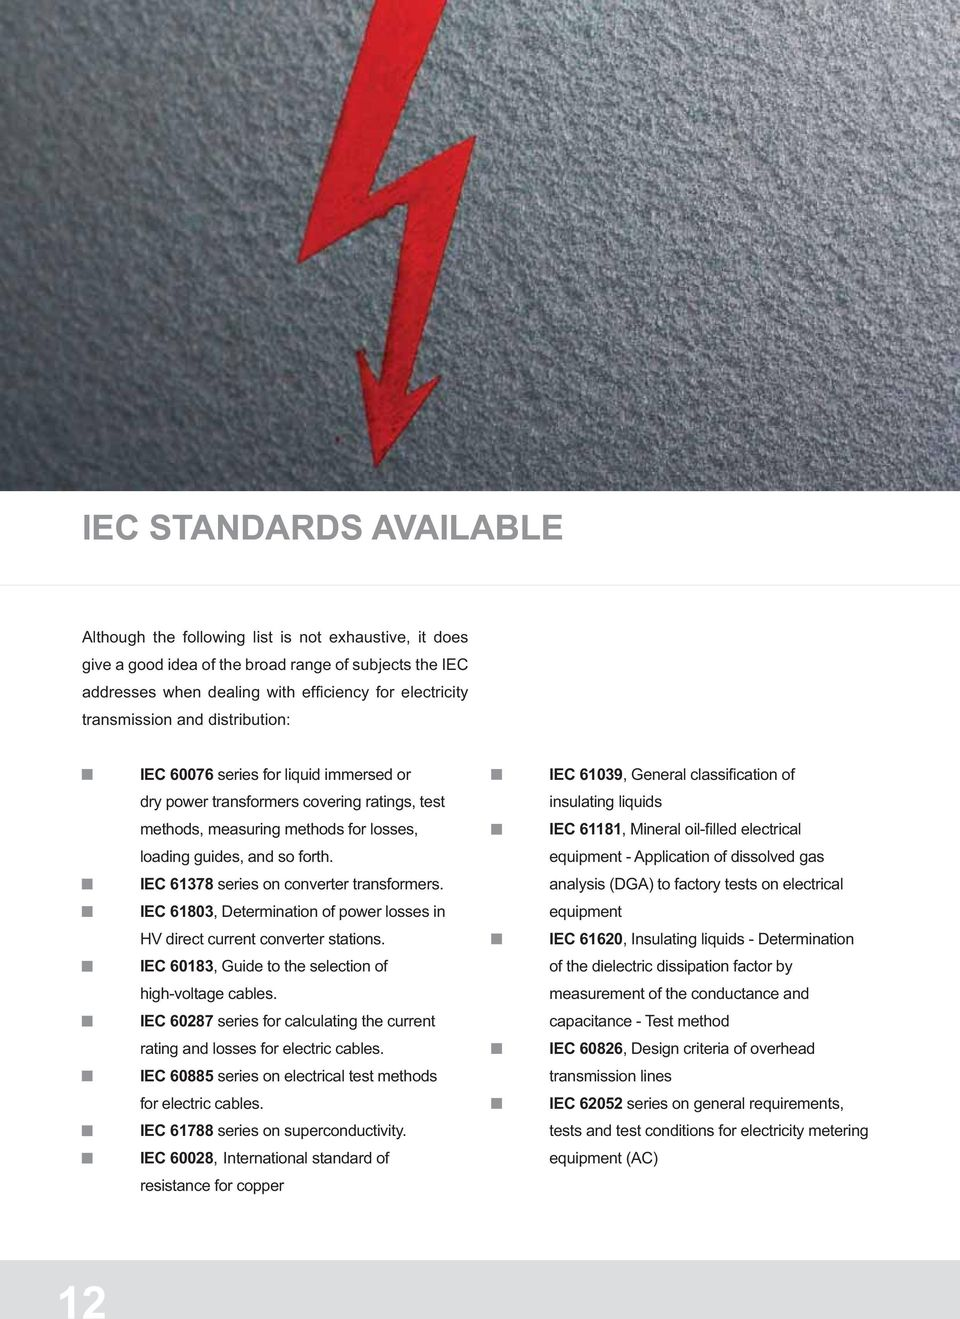 IEC 61803, Determination of power losses in HV direct current converter stations. IEC 60183, Guide to the selection of high-voltage cables.